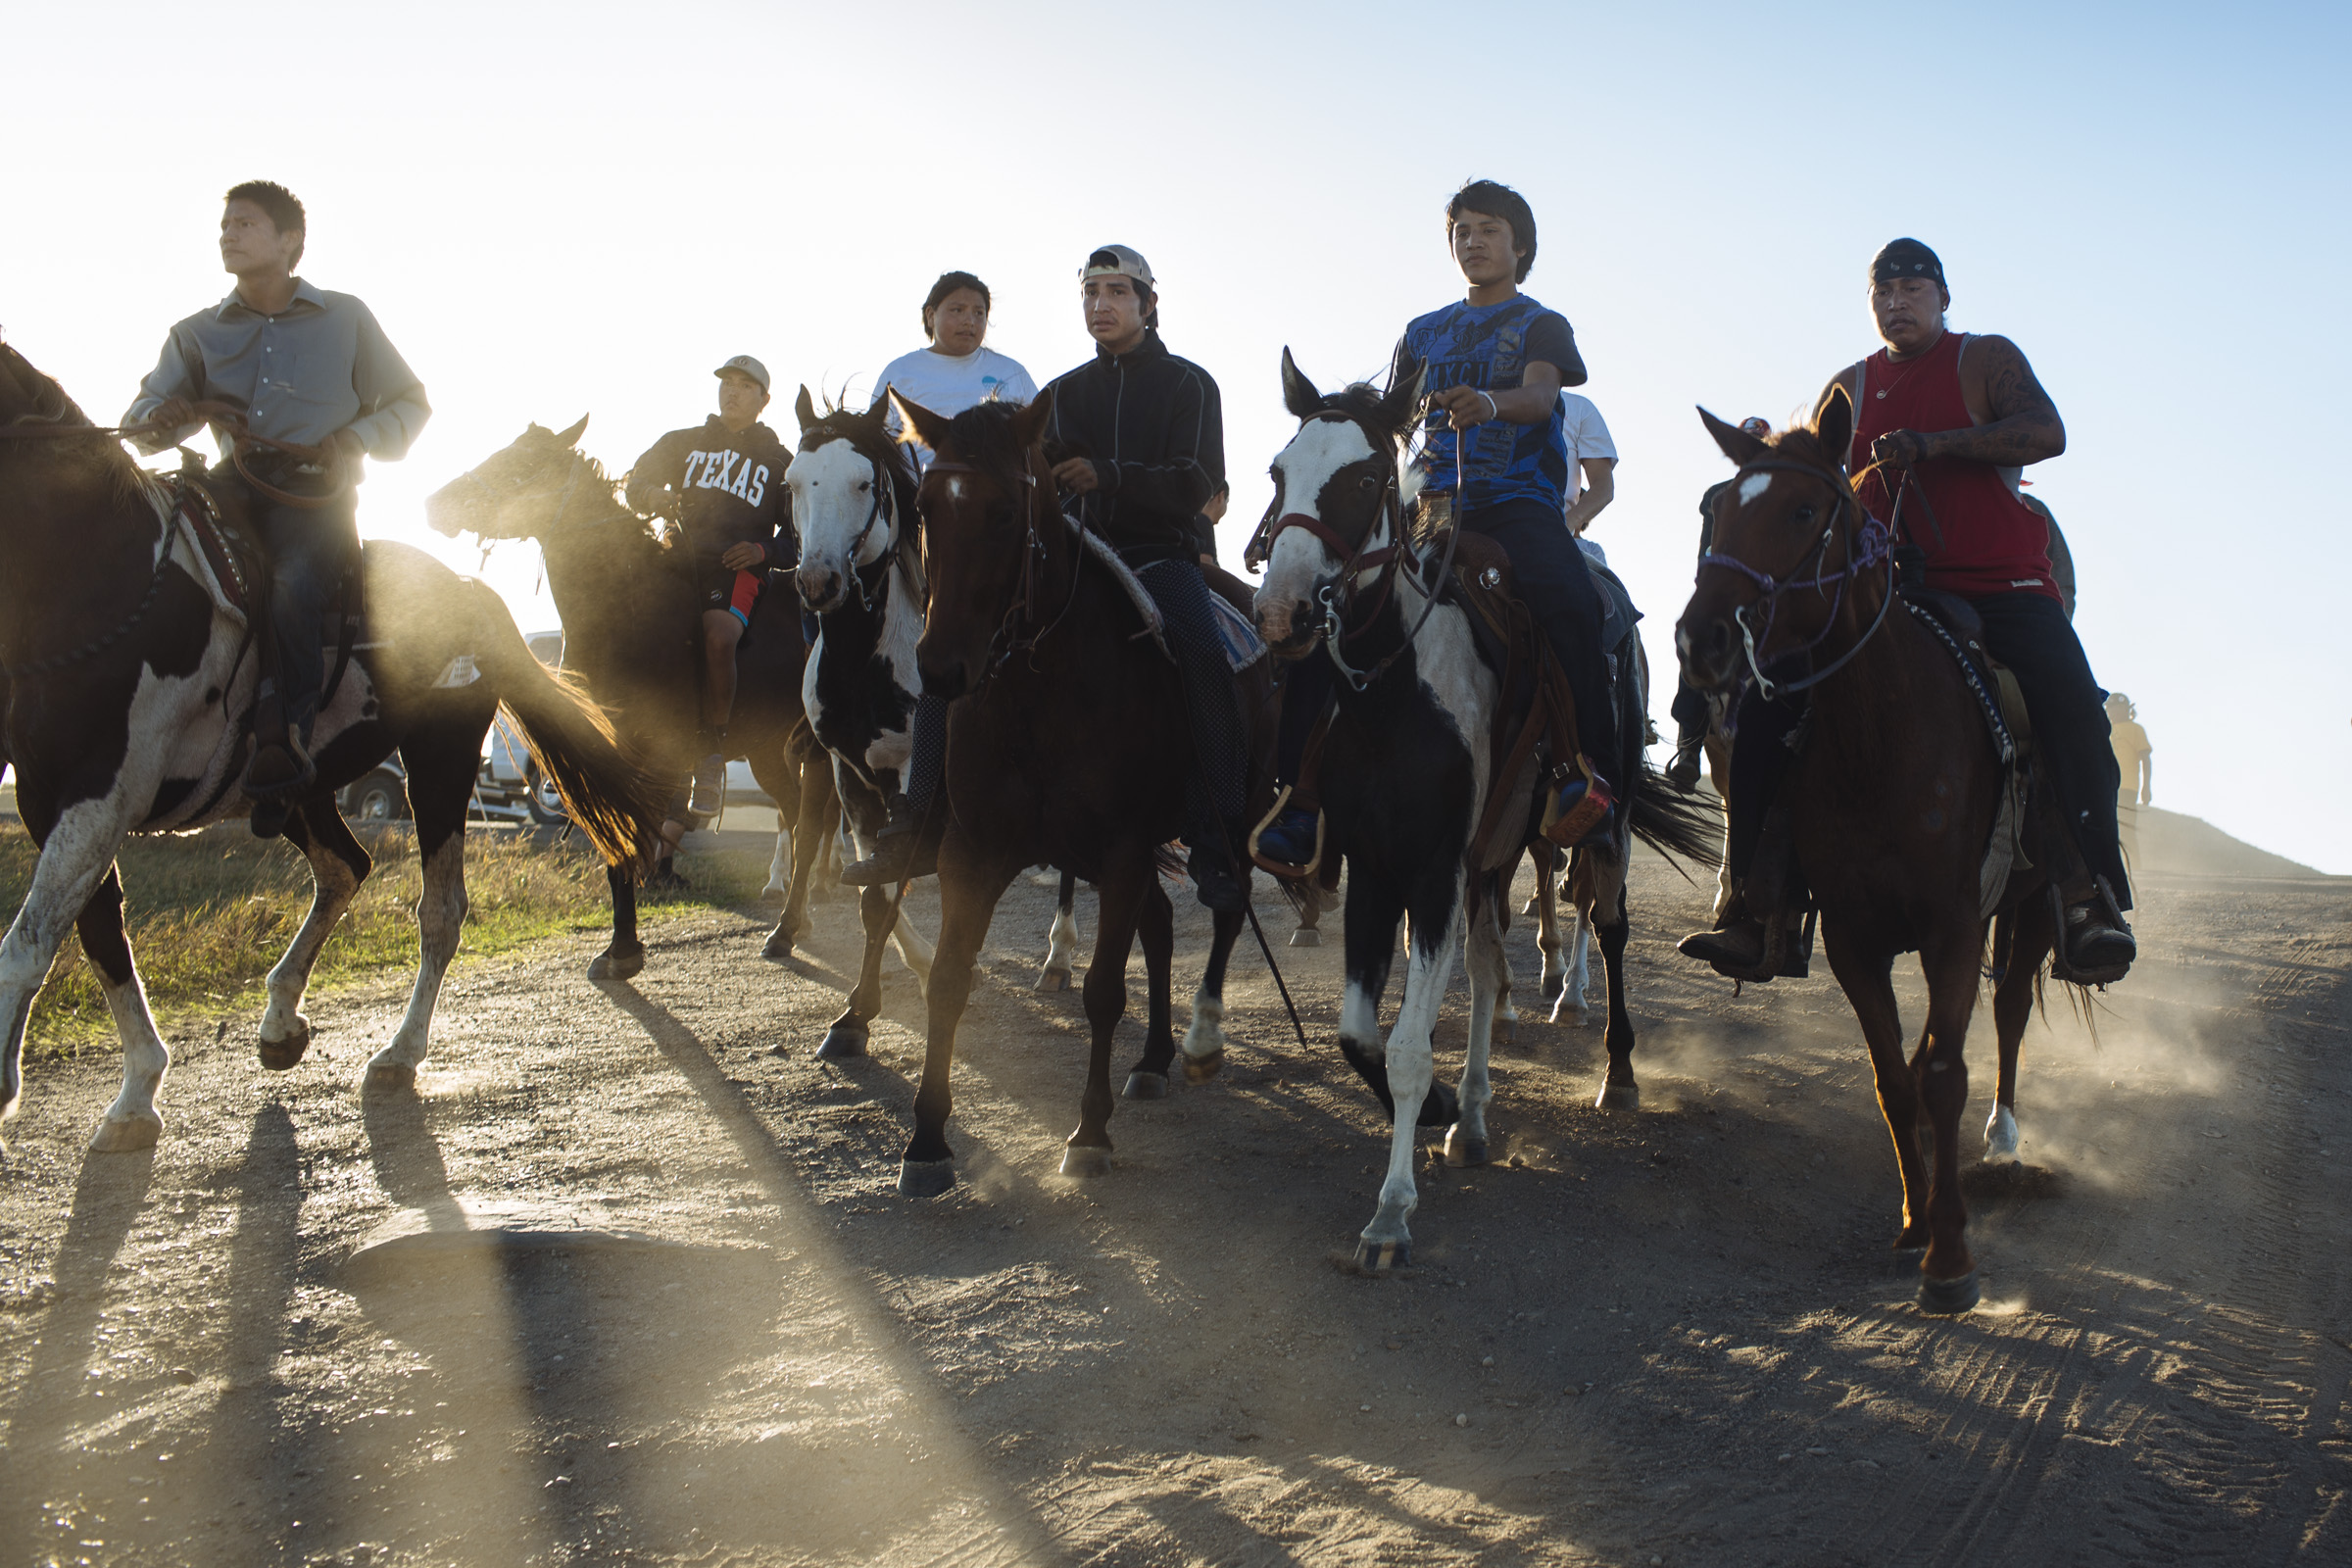 A group of Native American men on horseback enter the Oceti Sakowin Camp ahead of a group of youth, who ran approximately 300 miles from the Pine Ridge Reservation to join the protest movement at Standing Rock on Saturday, Oct. 1, 2016. Thousands of people, including Native Americans from over 280 tribes, have come to Standing Rock to protest the construction of the Dakota Access Pipeline, a 1,172-mile underground crude oil pipeline which is expected to transport crude oil from the Bakken region to an oil tank farm in Patoka, Illinois. (Photo by Angus Mordant/Groundtruth)